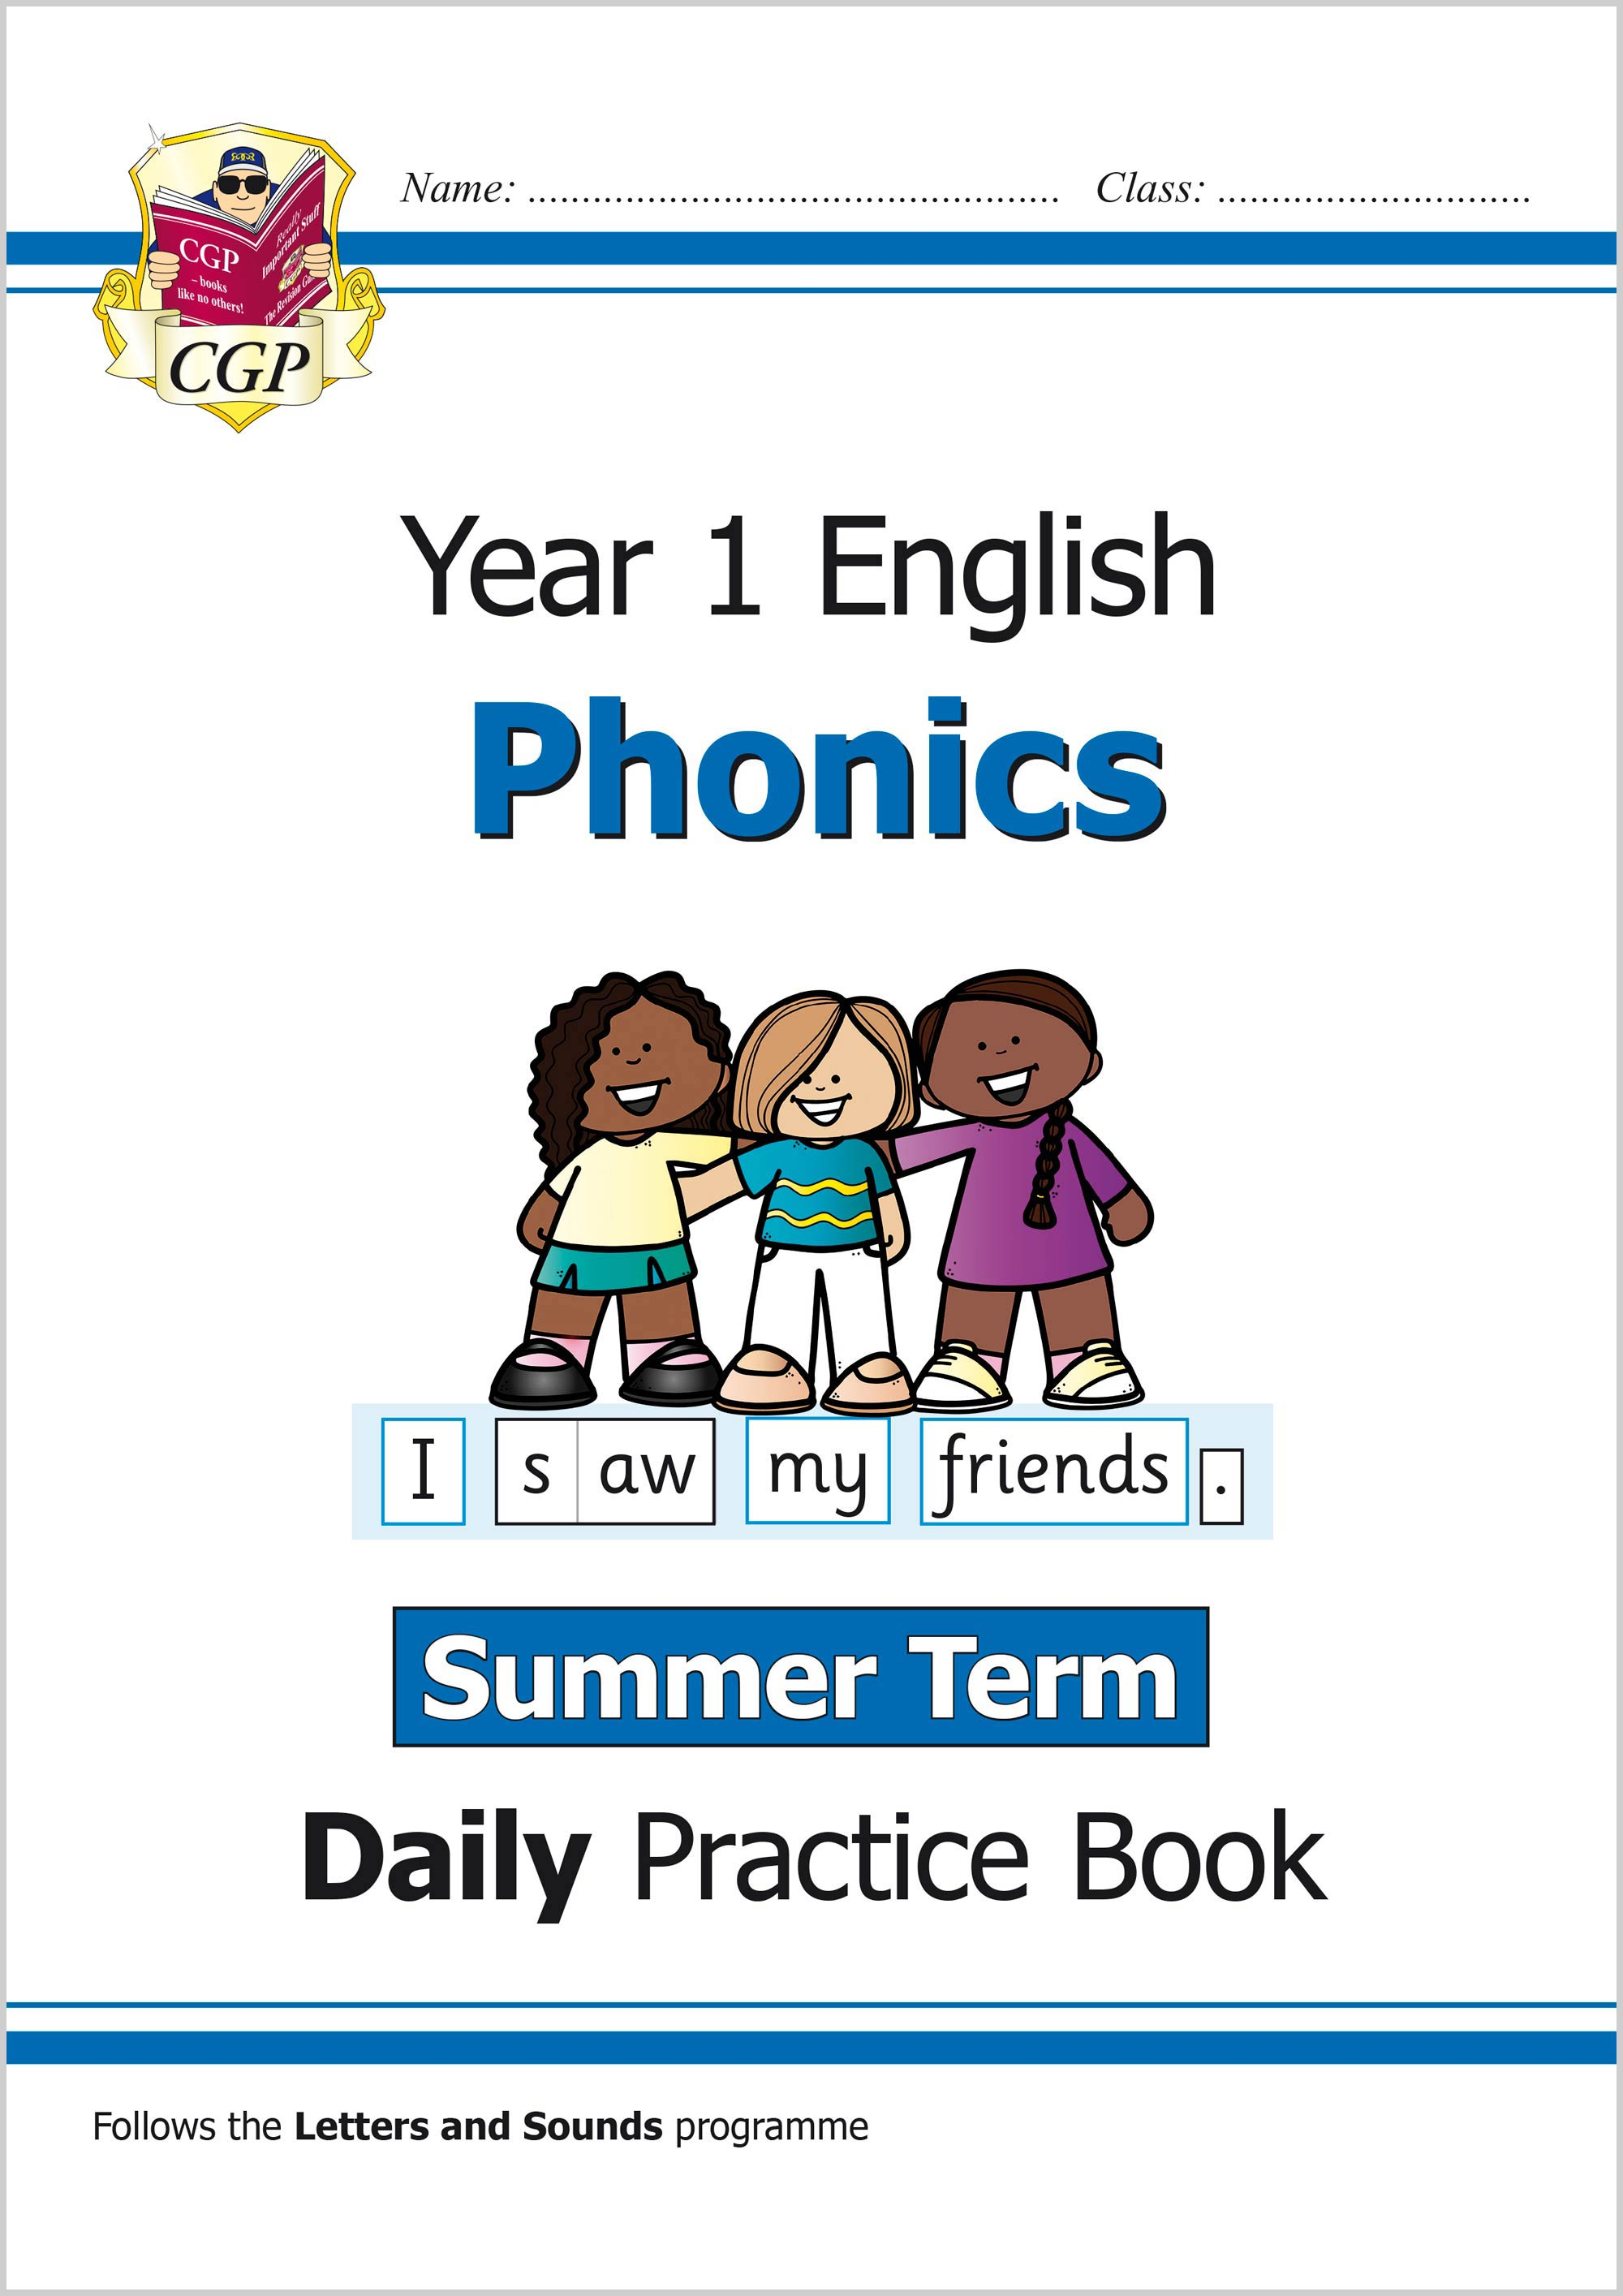 E1OWSU11 - New KS1 Phonics Daily Practice Book: Year 1 - Summer Term